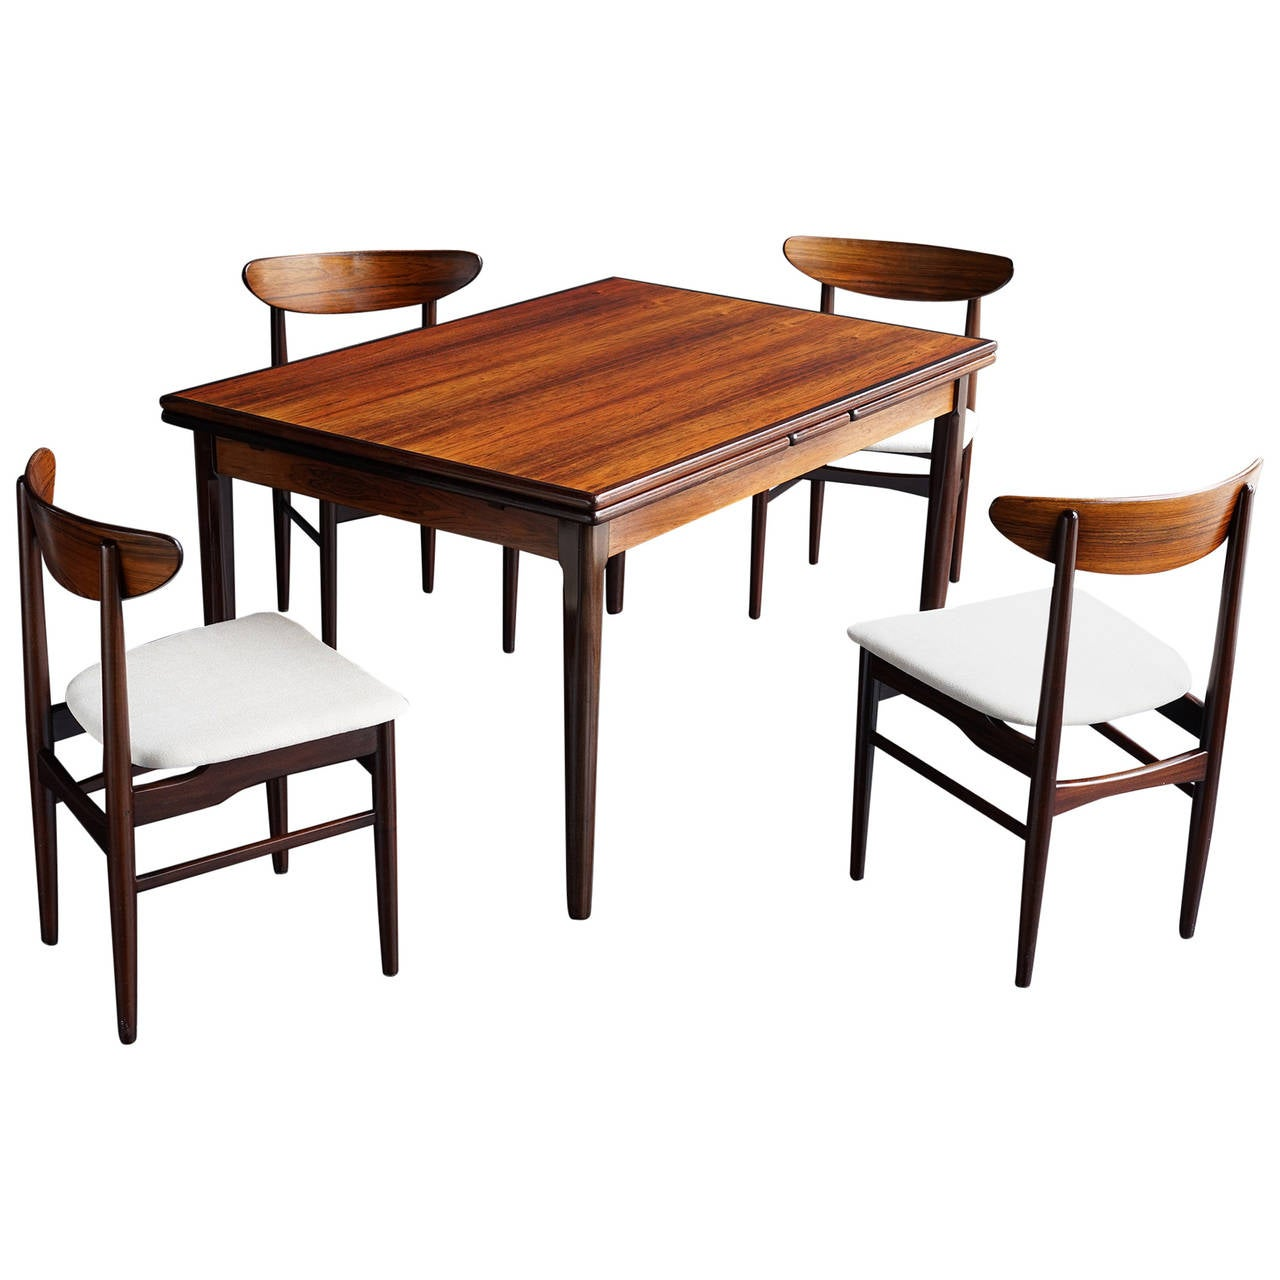 Danish modern rosewood dining set at 1stdibs for New dining room sets